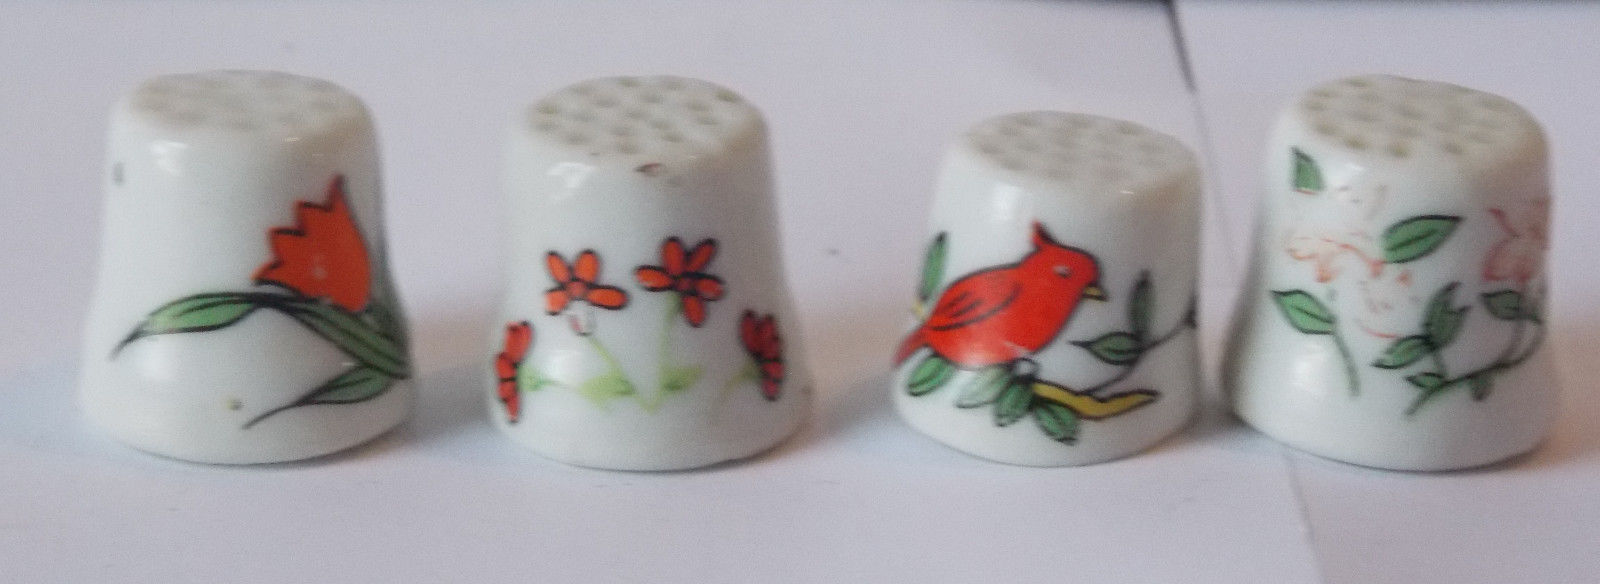 4 thimbles Floral theme - Tulips, Pink, Red and a Cardinal - Unmarked